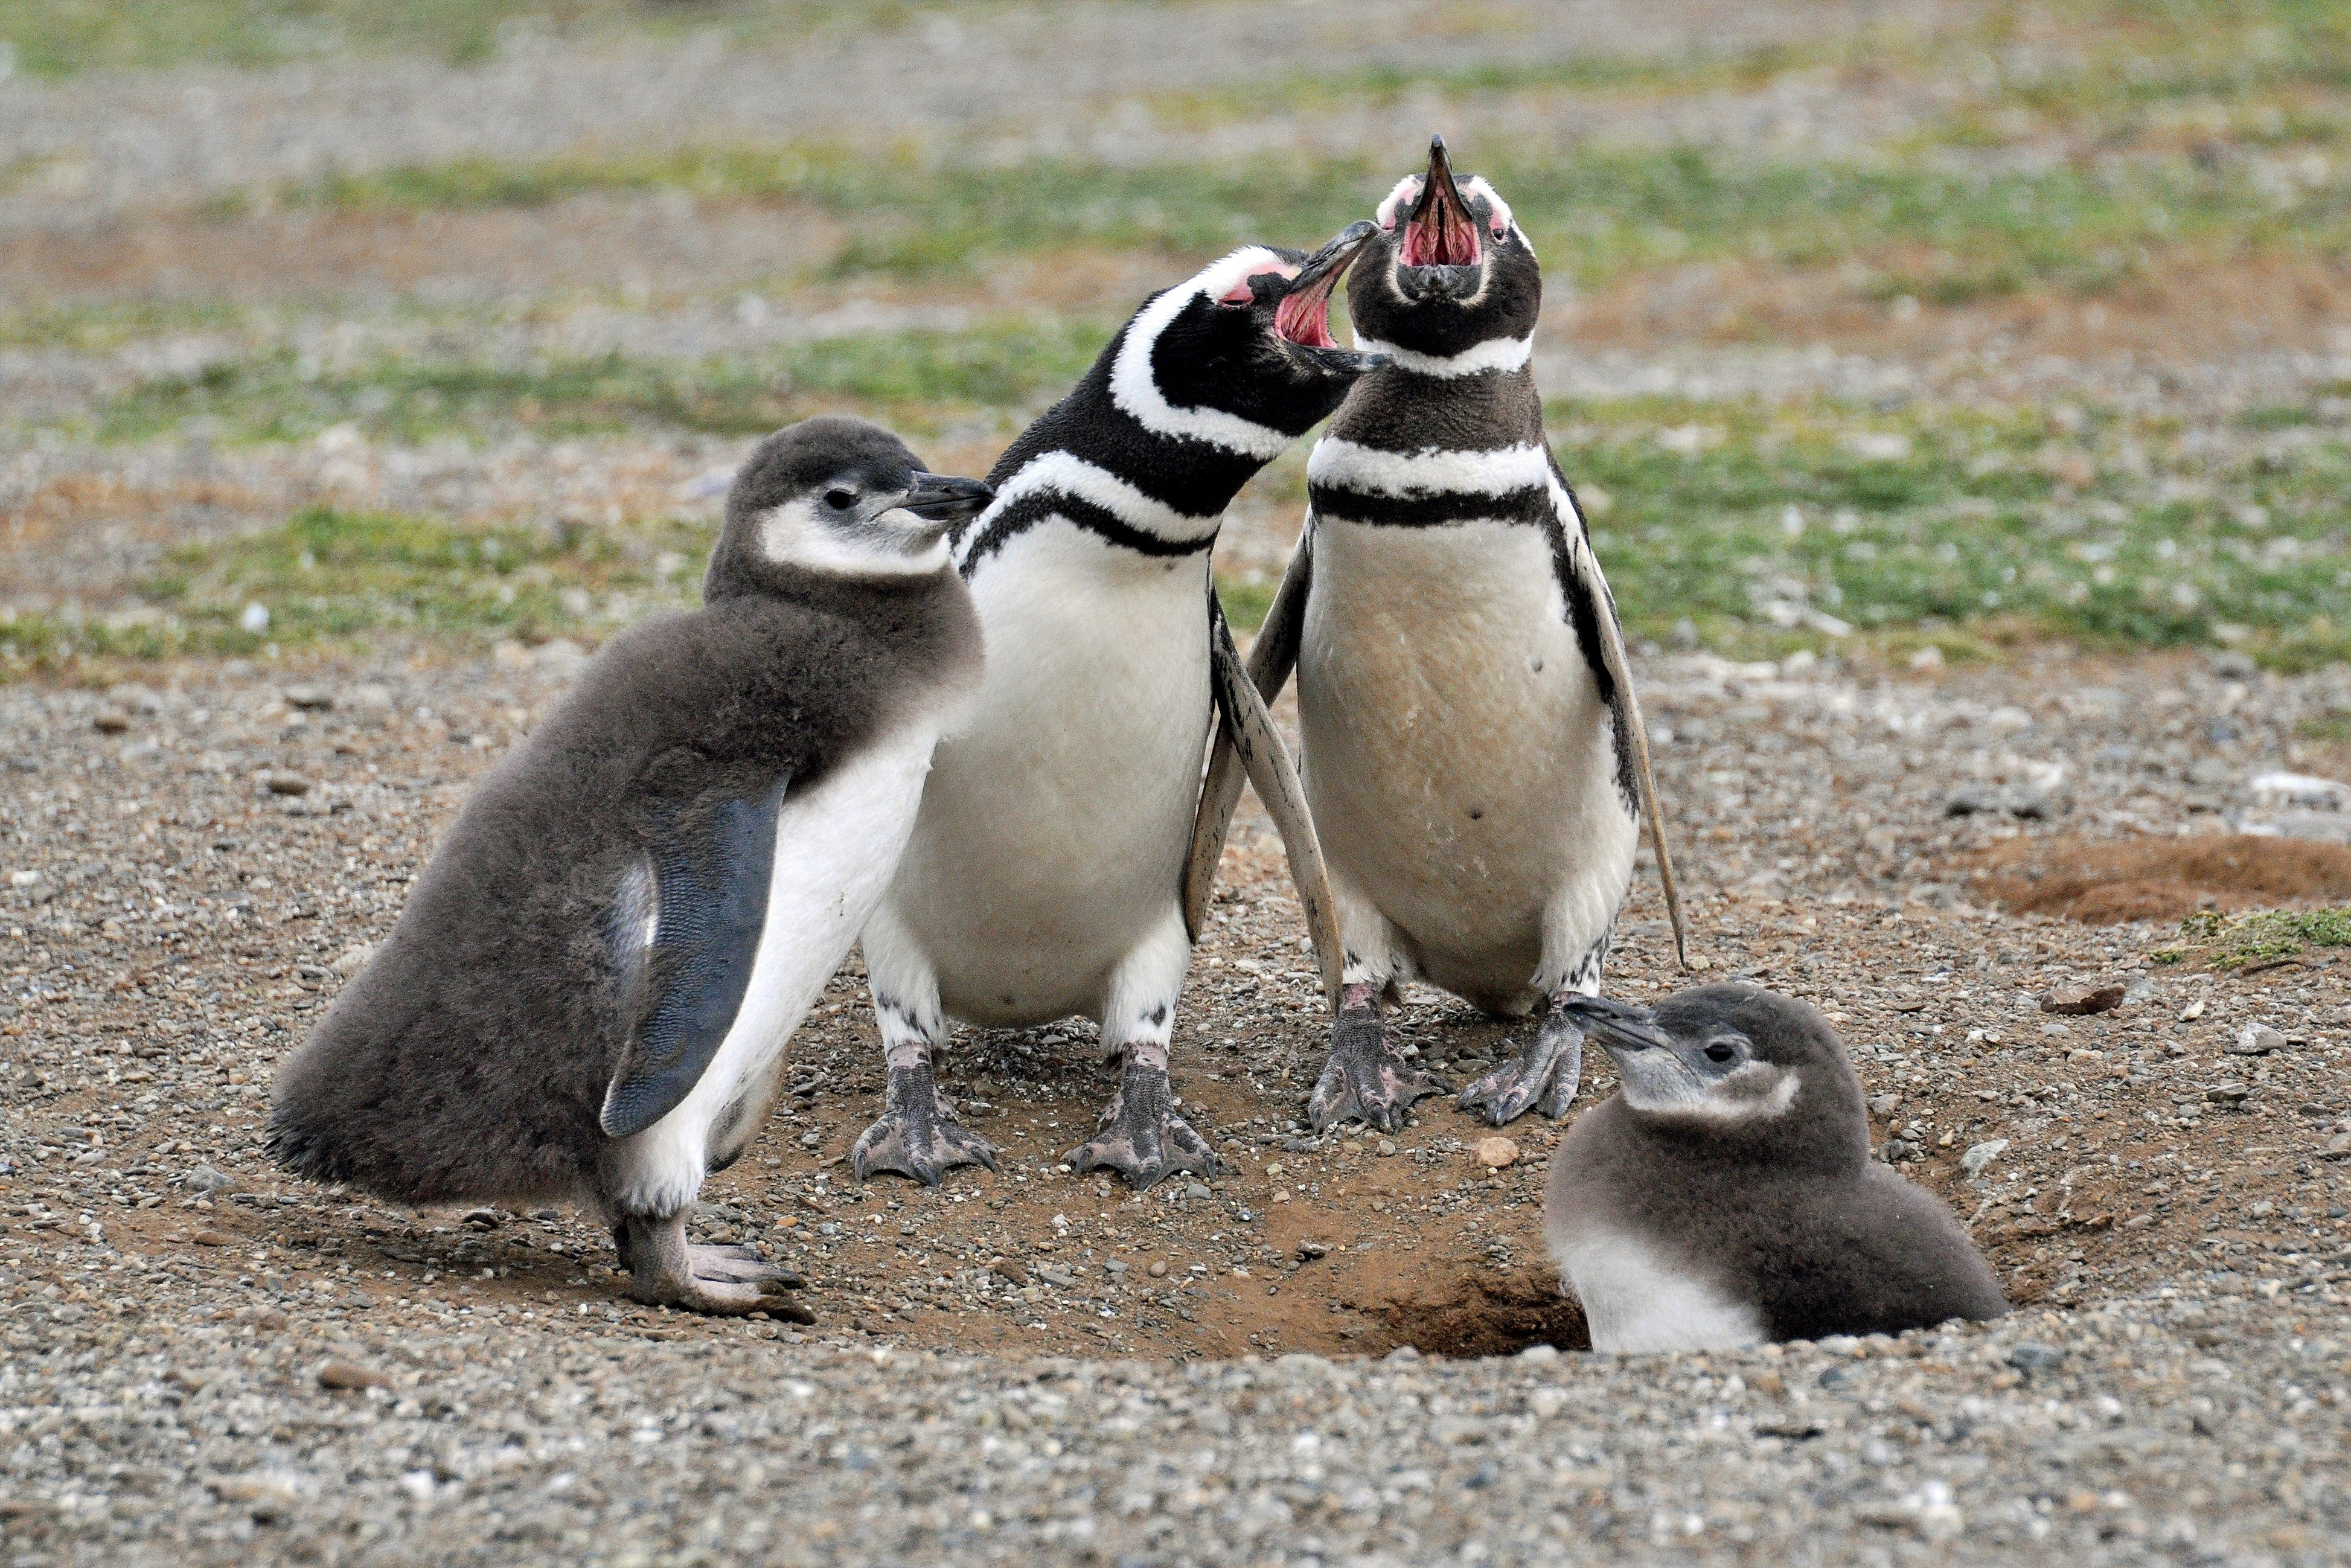 Two White-and-black Adult Penguins Near Two Penguin Chicks, Animal, Little, Wildlife, Wild, HQ Photo